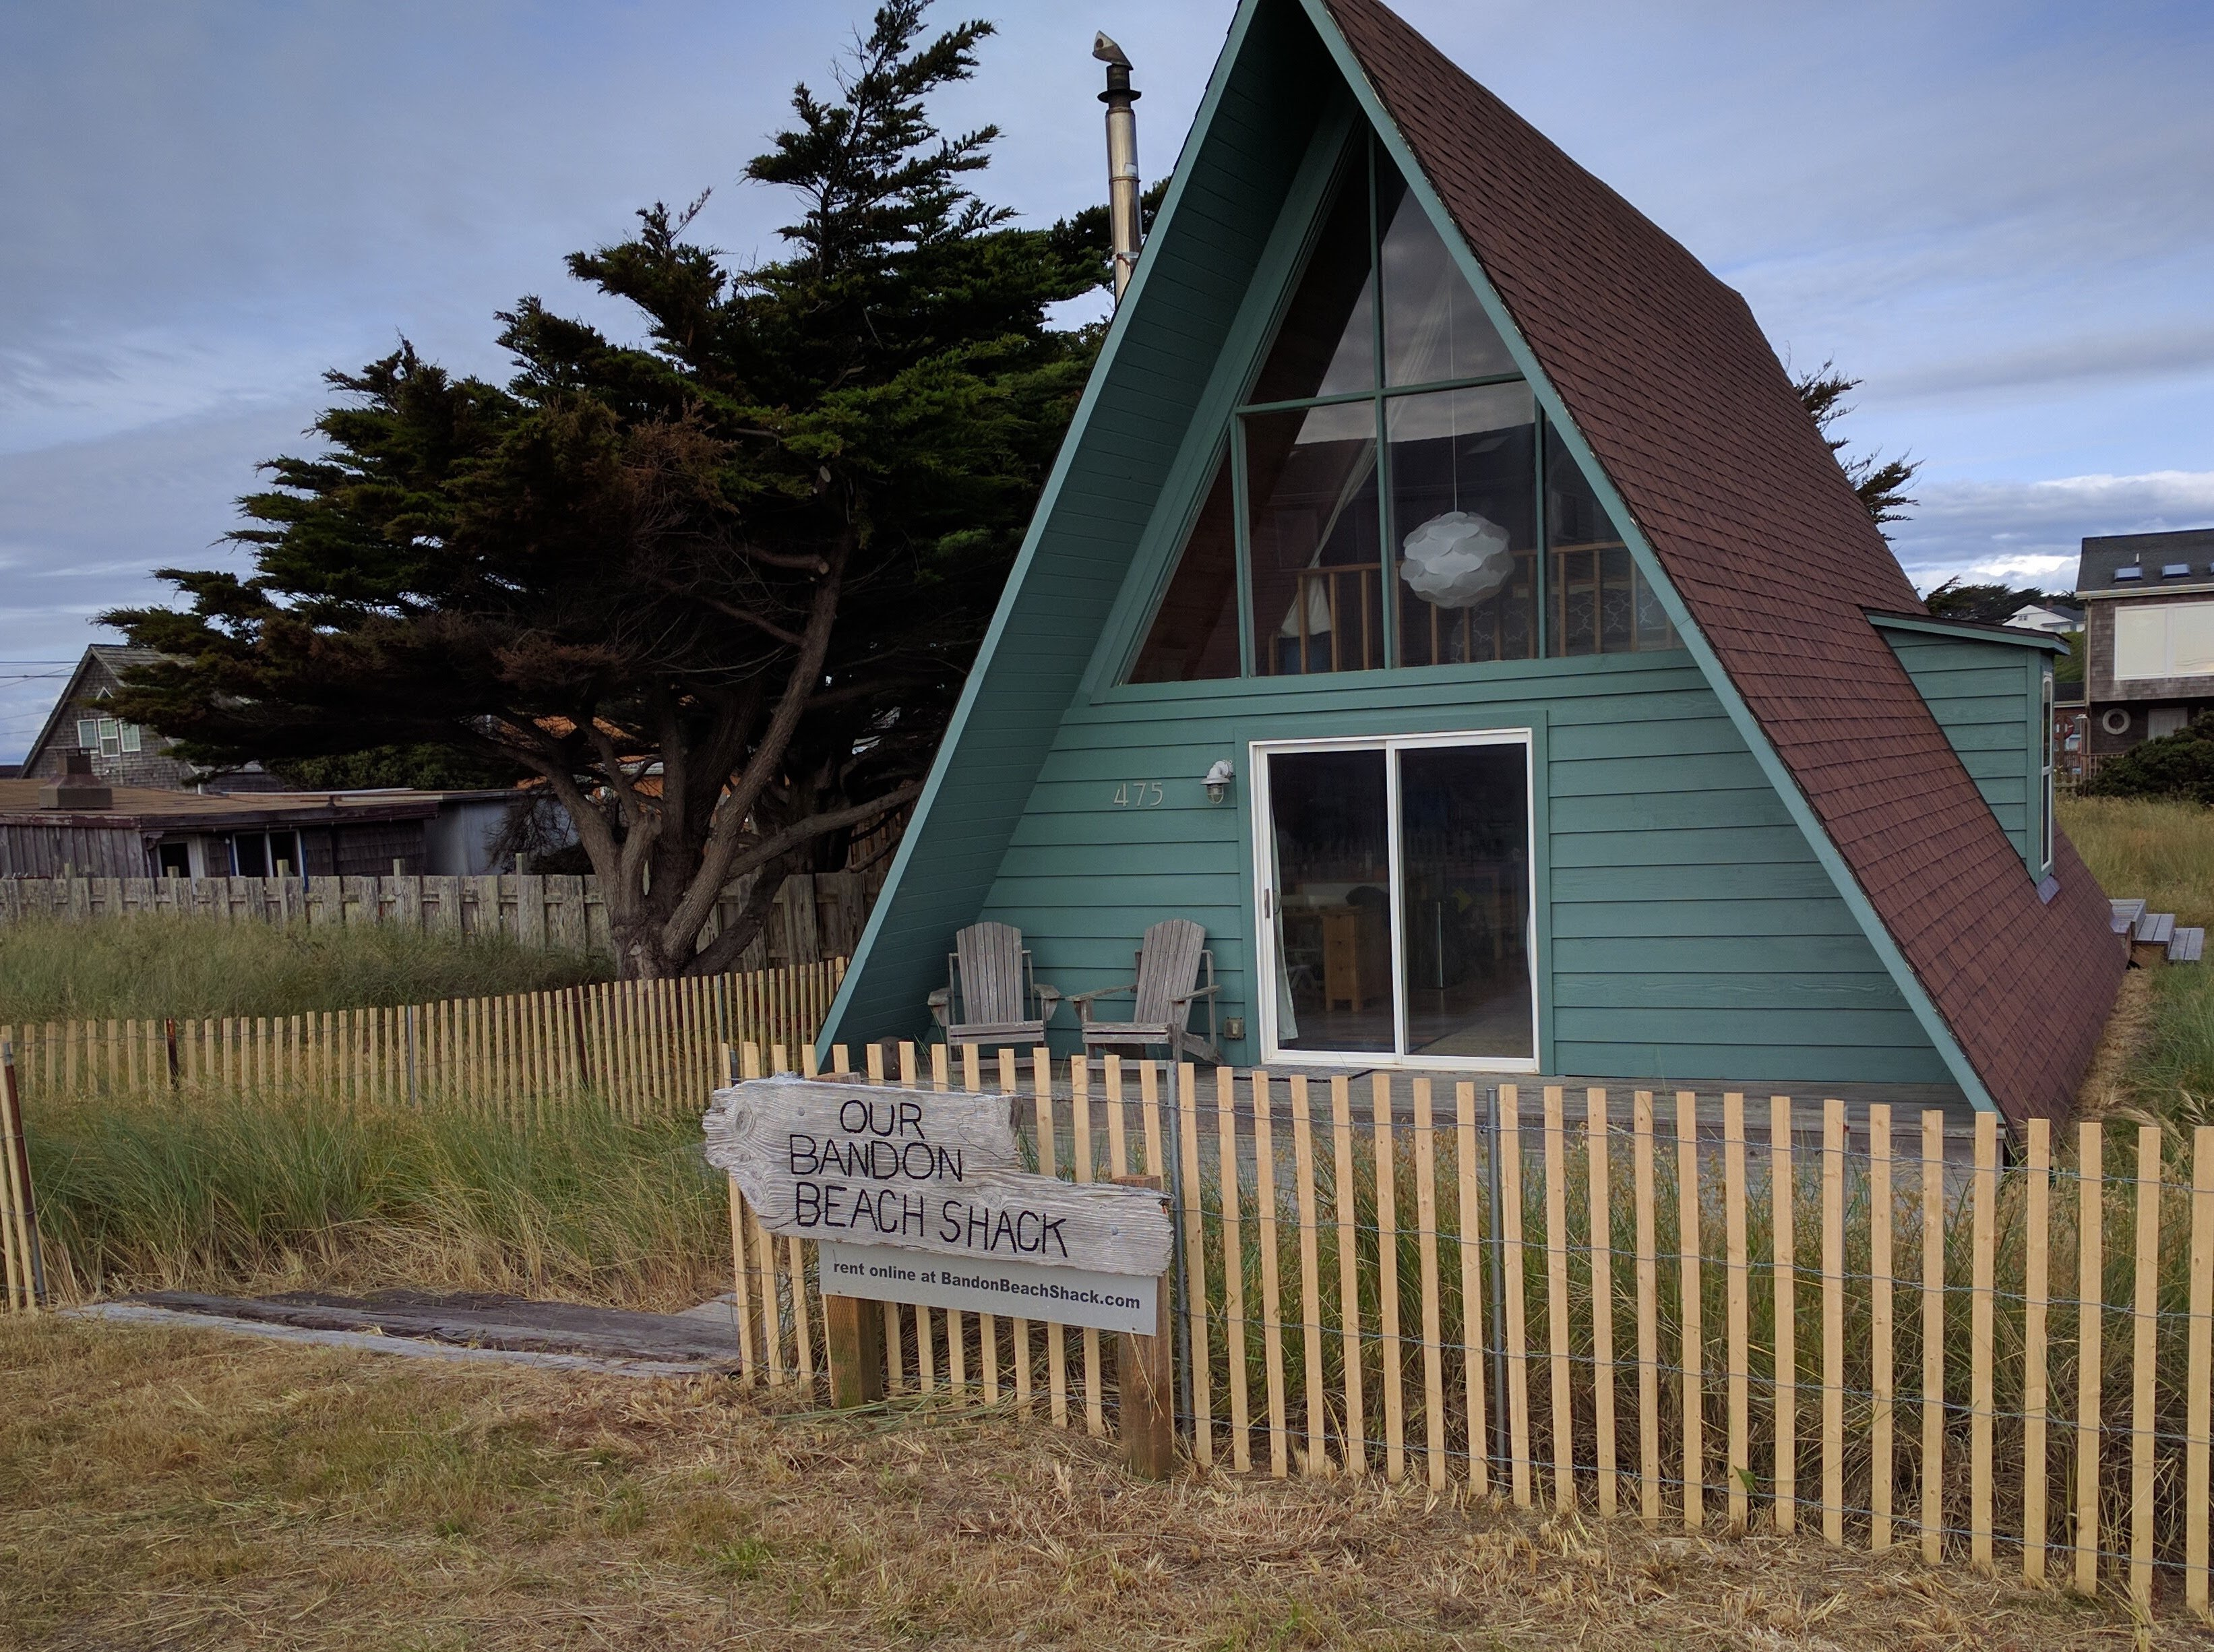 a-frame vacation rental in Bandon, Oregon